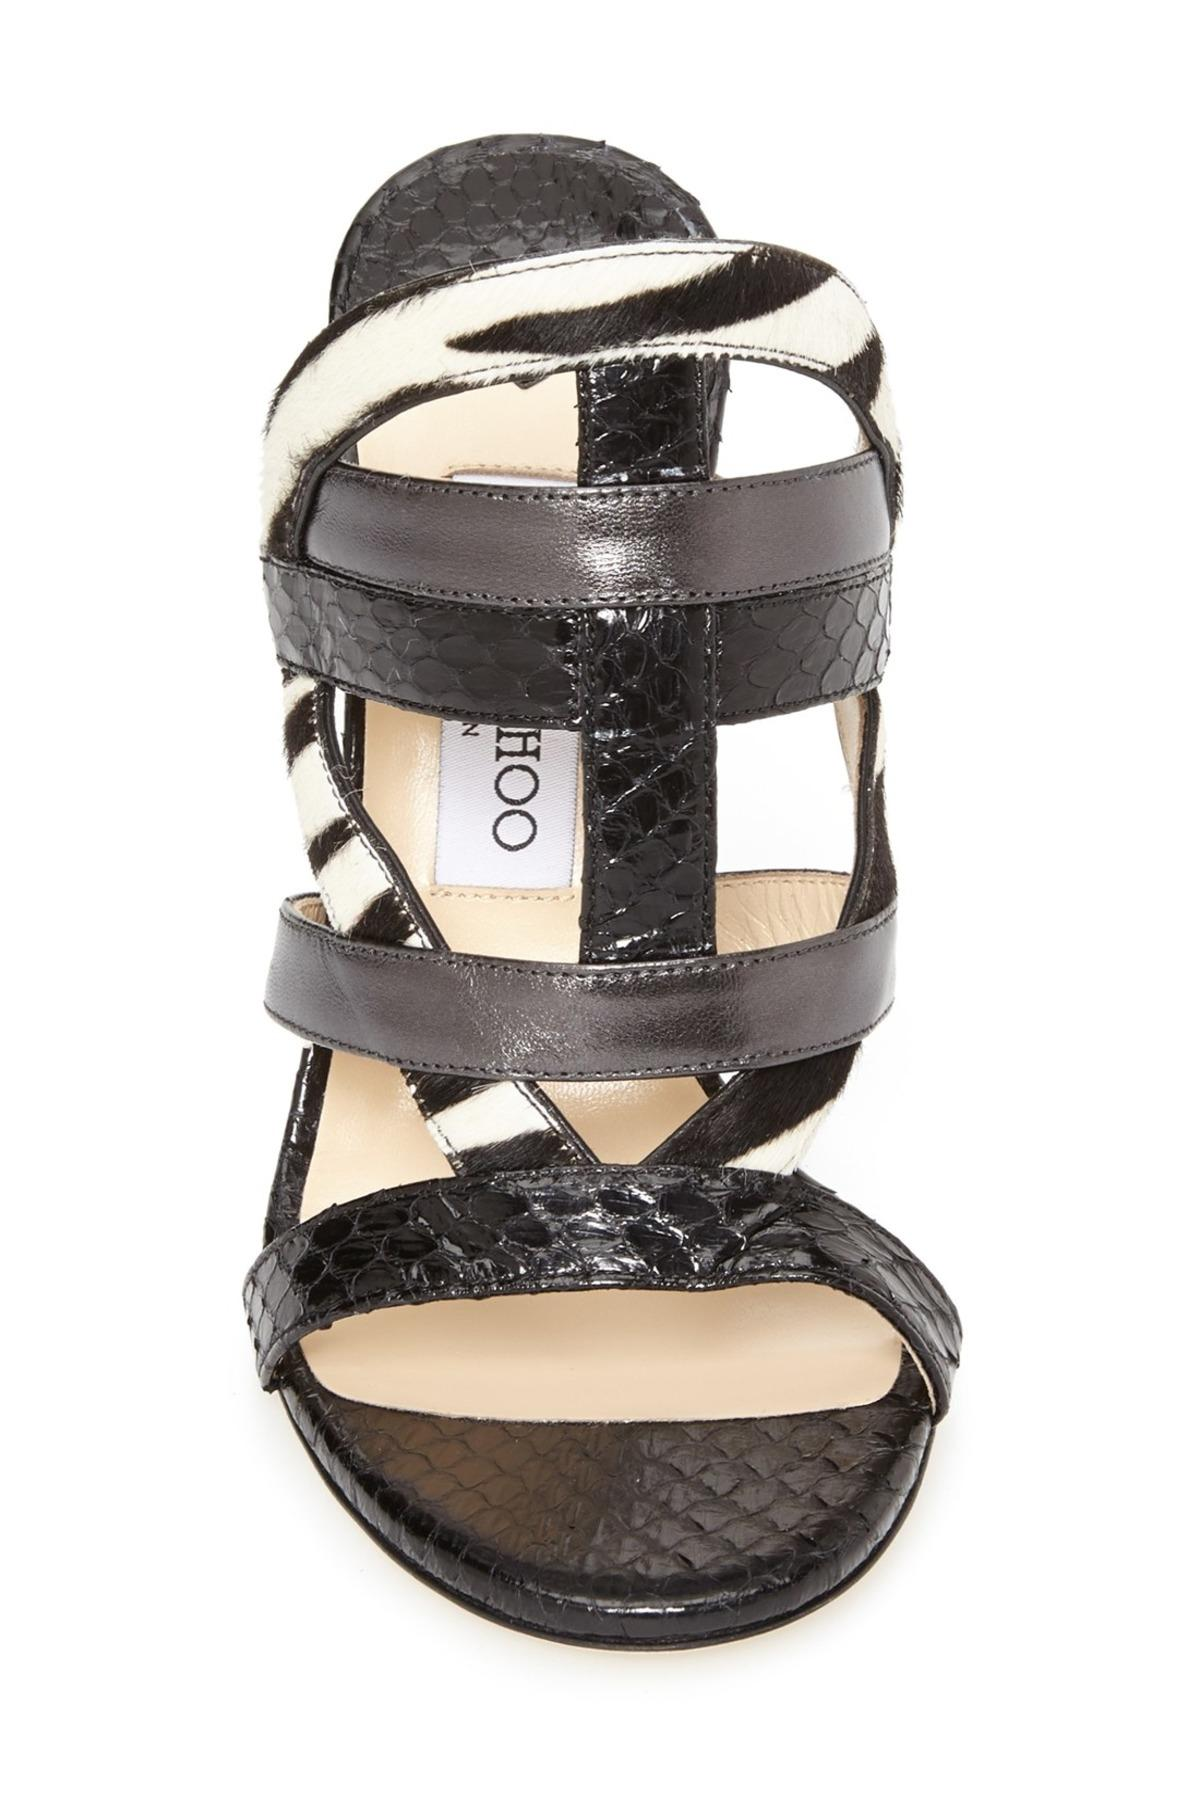 jimmy choo night sandals for sale louboutin factory. Black Bedroom Furniture Sets. Home Design Ideas